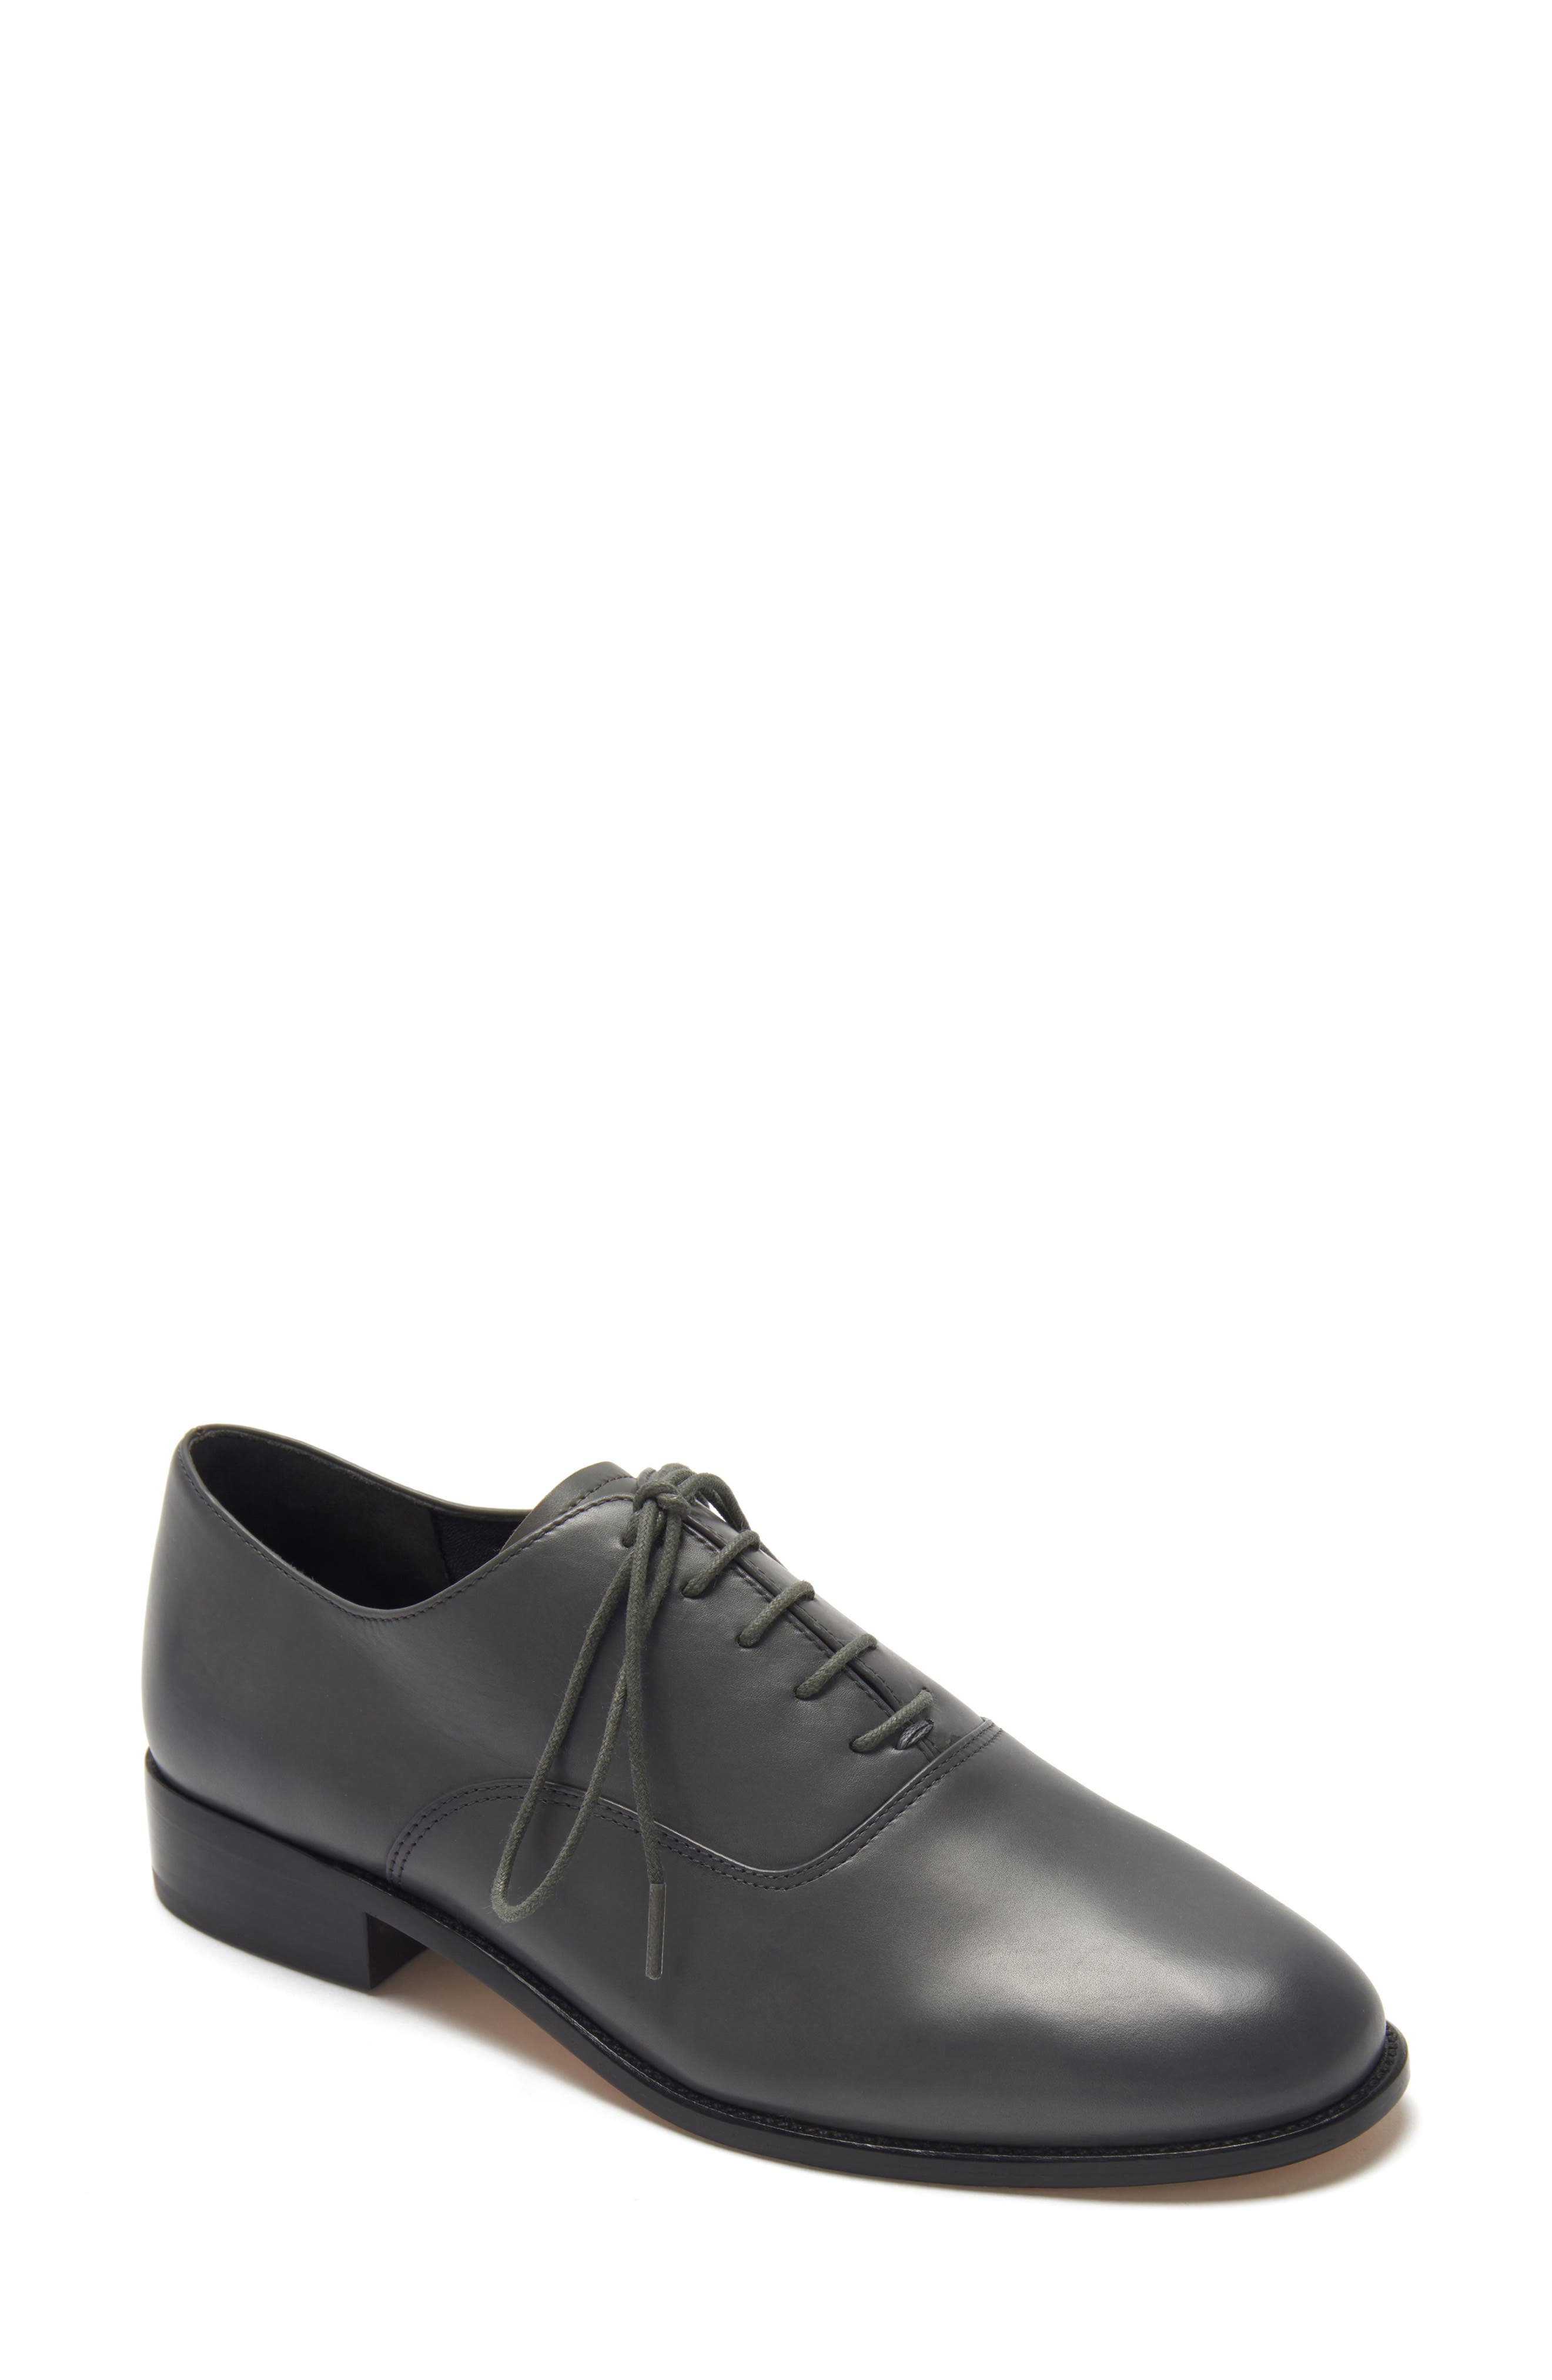 ETIENNE AIGNER Emery Lace-Up Oxford, Main, color, GRANITE LEATHER